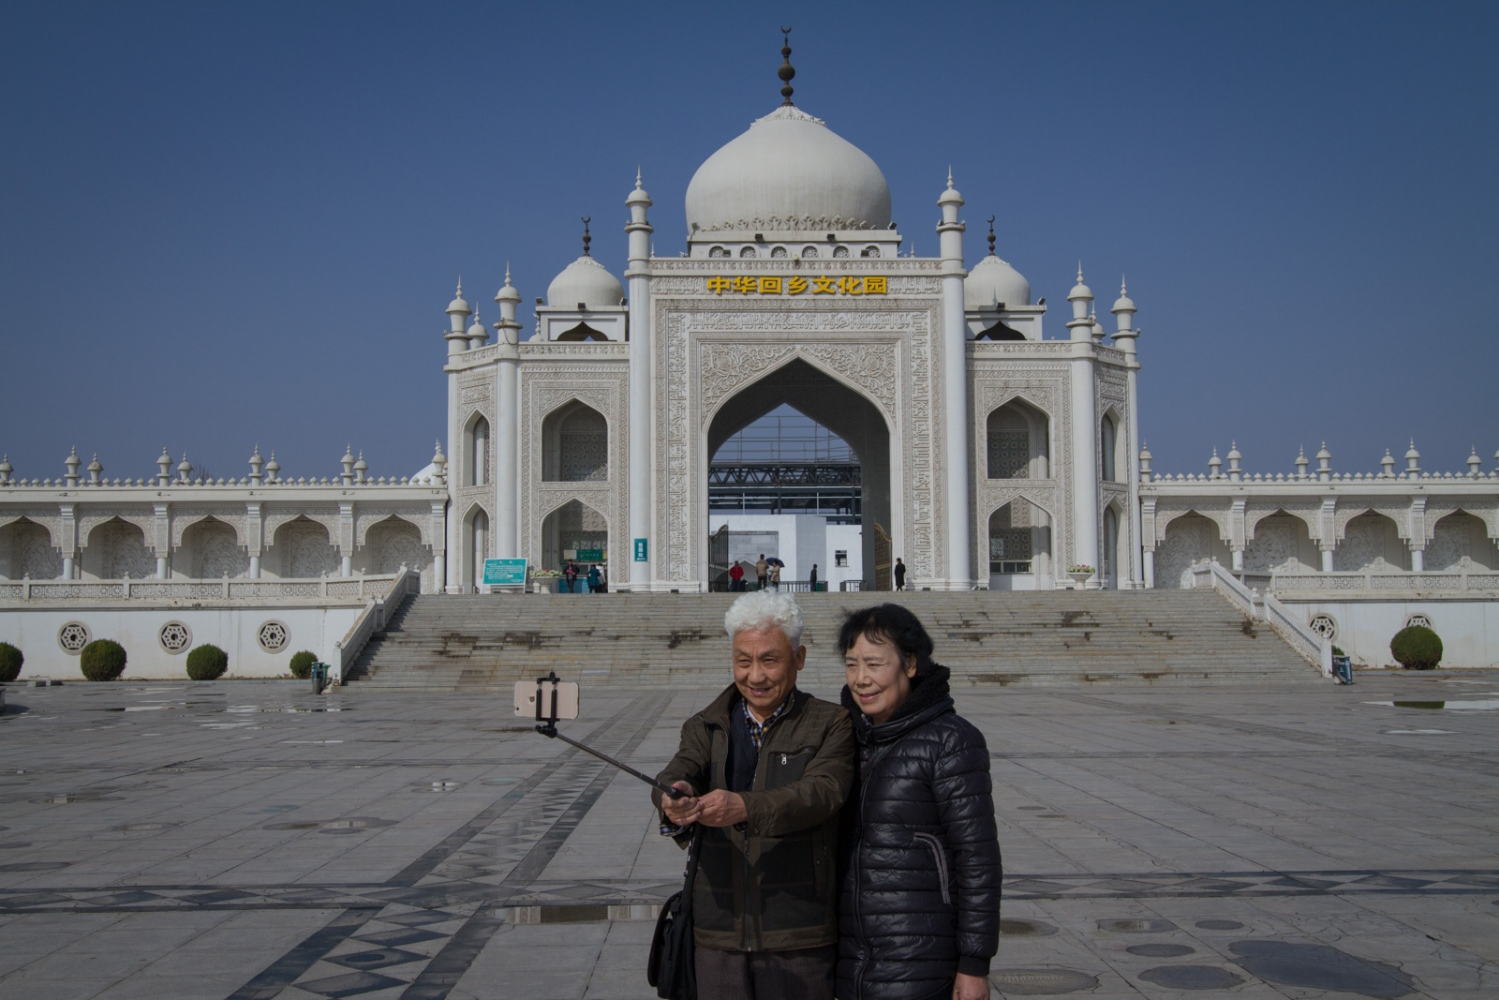 Visitors take a selfie in front of the Taj Mahal-inspired main entrance to the Hui Culture Park. The park's name is inscribed in yellow over the gates.